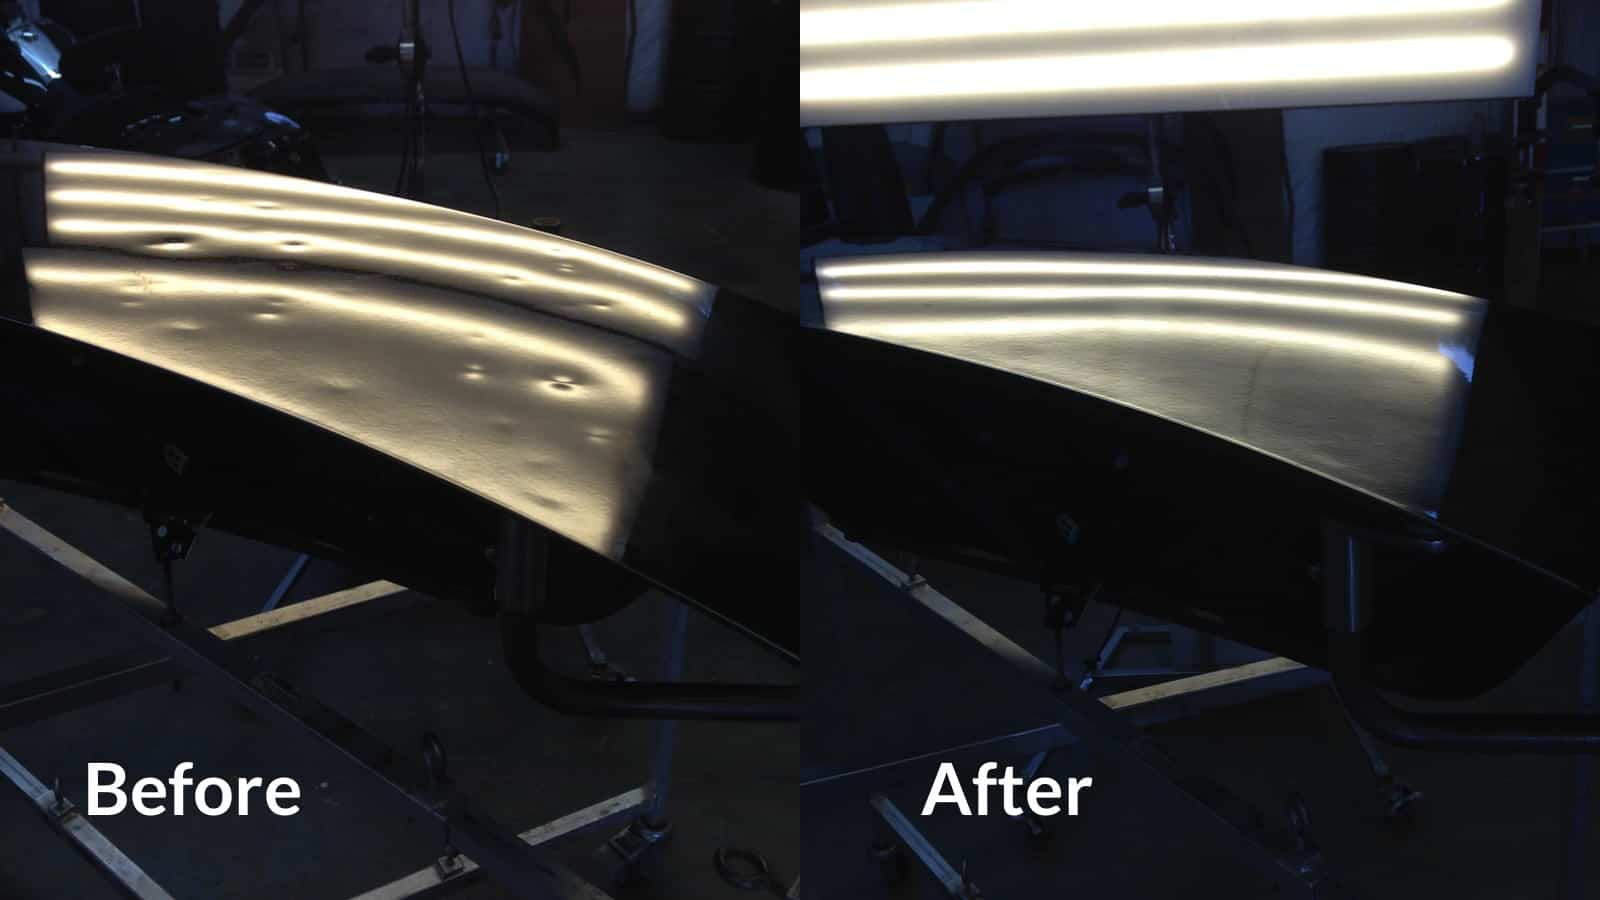 Hail Damage Repair Paintless Dent Repair Before and After Image